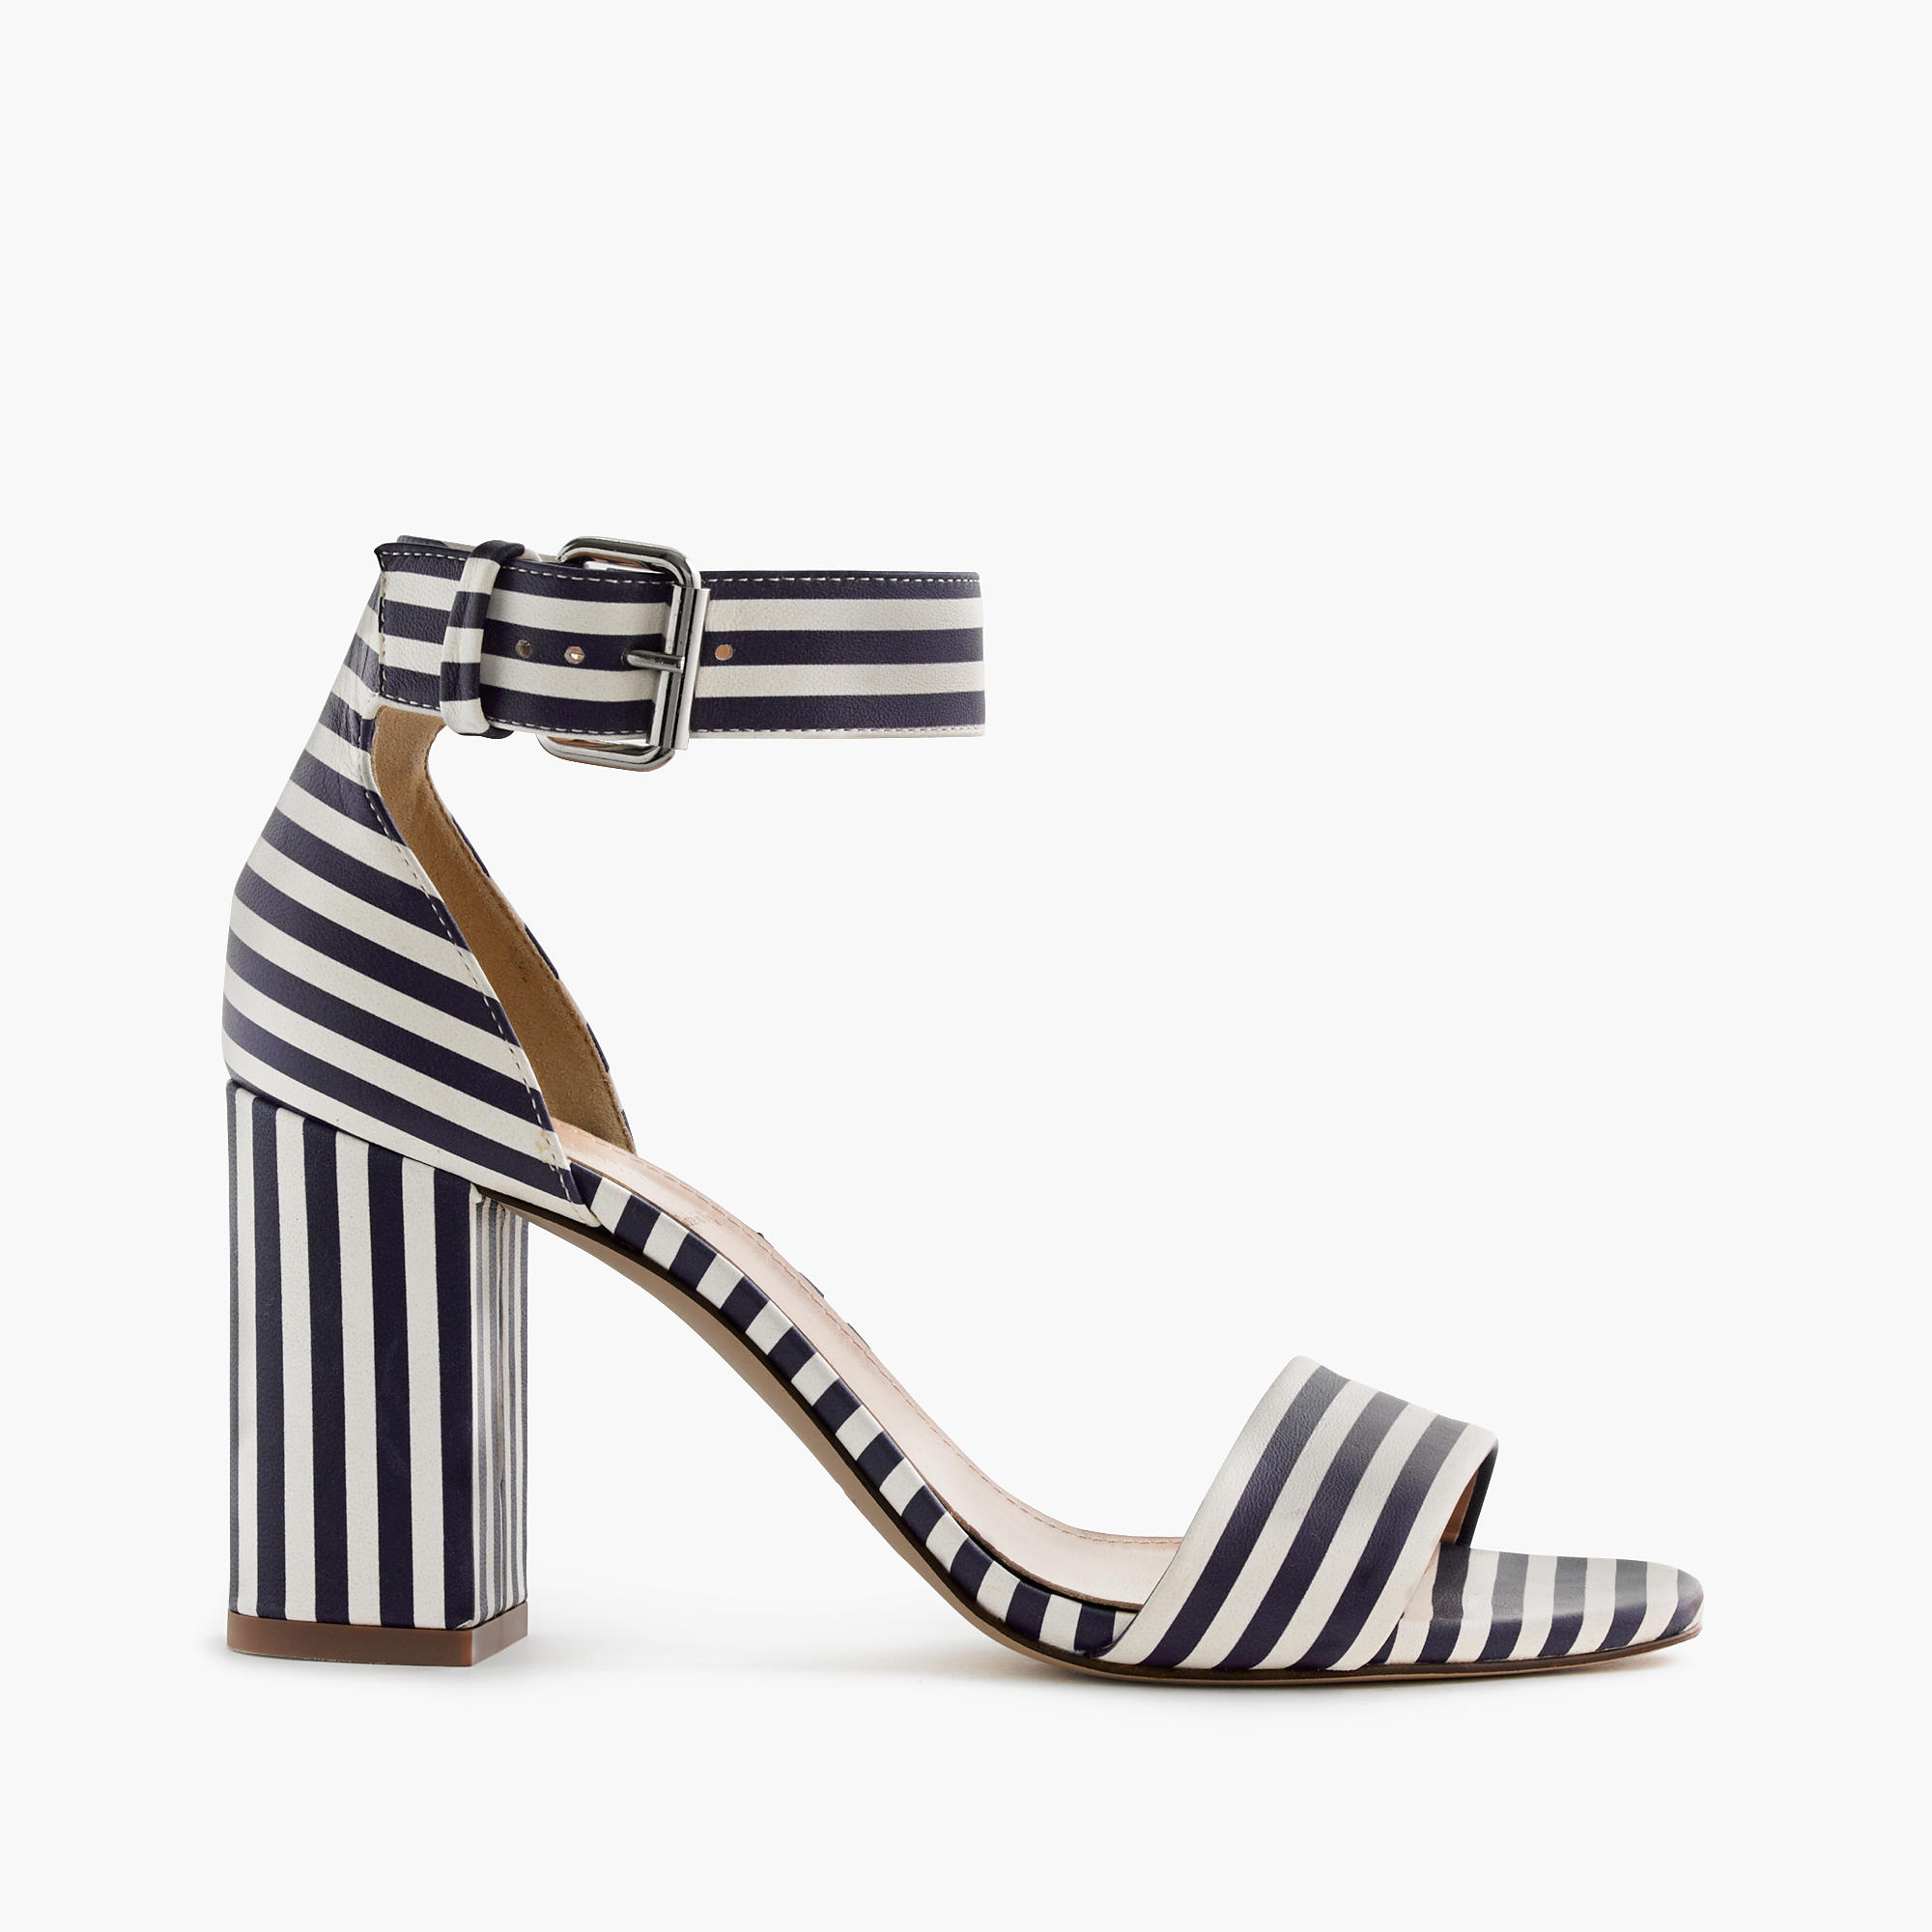 Striped Strappy High-Heel Sandals  available at J.Crew- $268 + 20% off